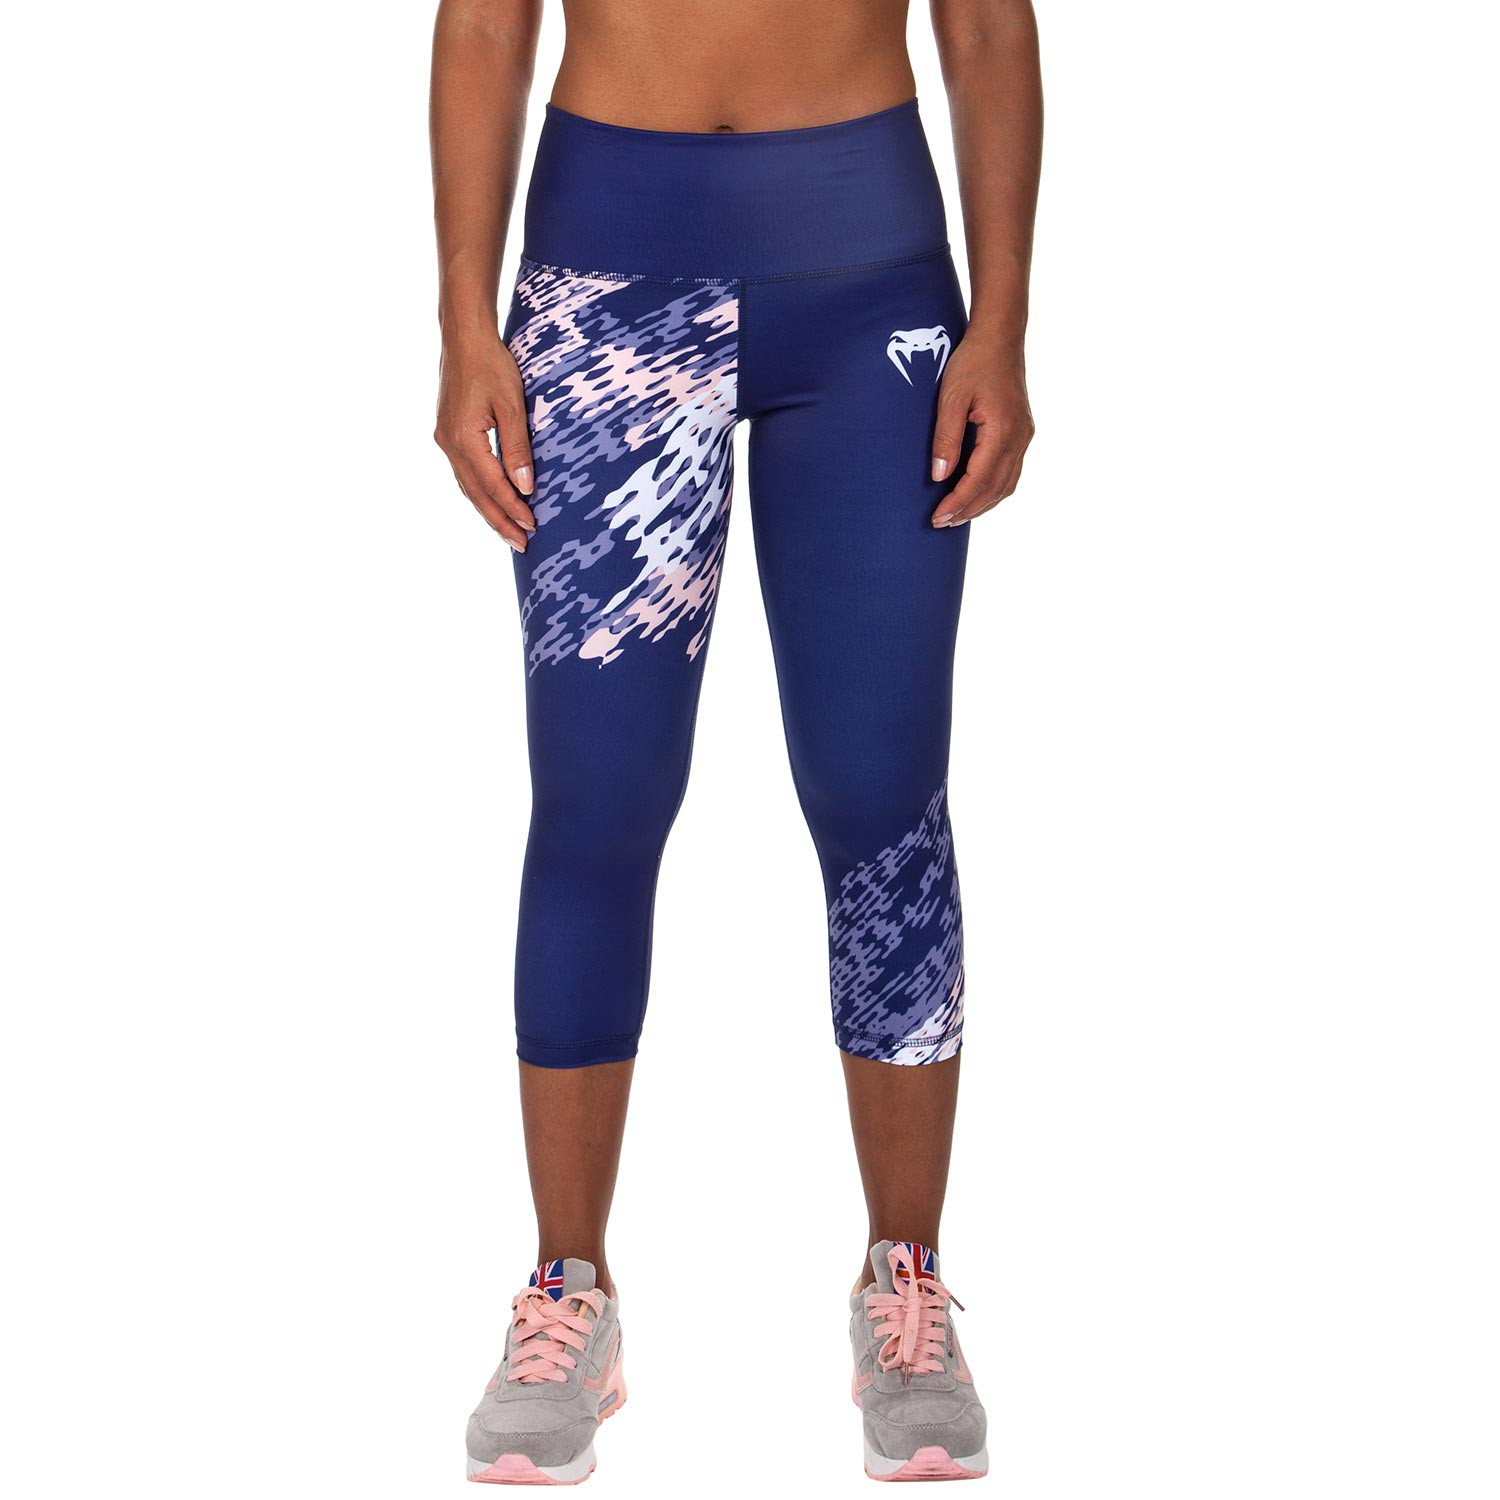 VENUM NEO CAMO 3/4 - es leggings, Navy